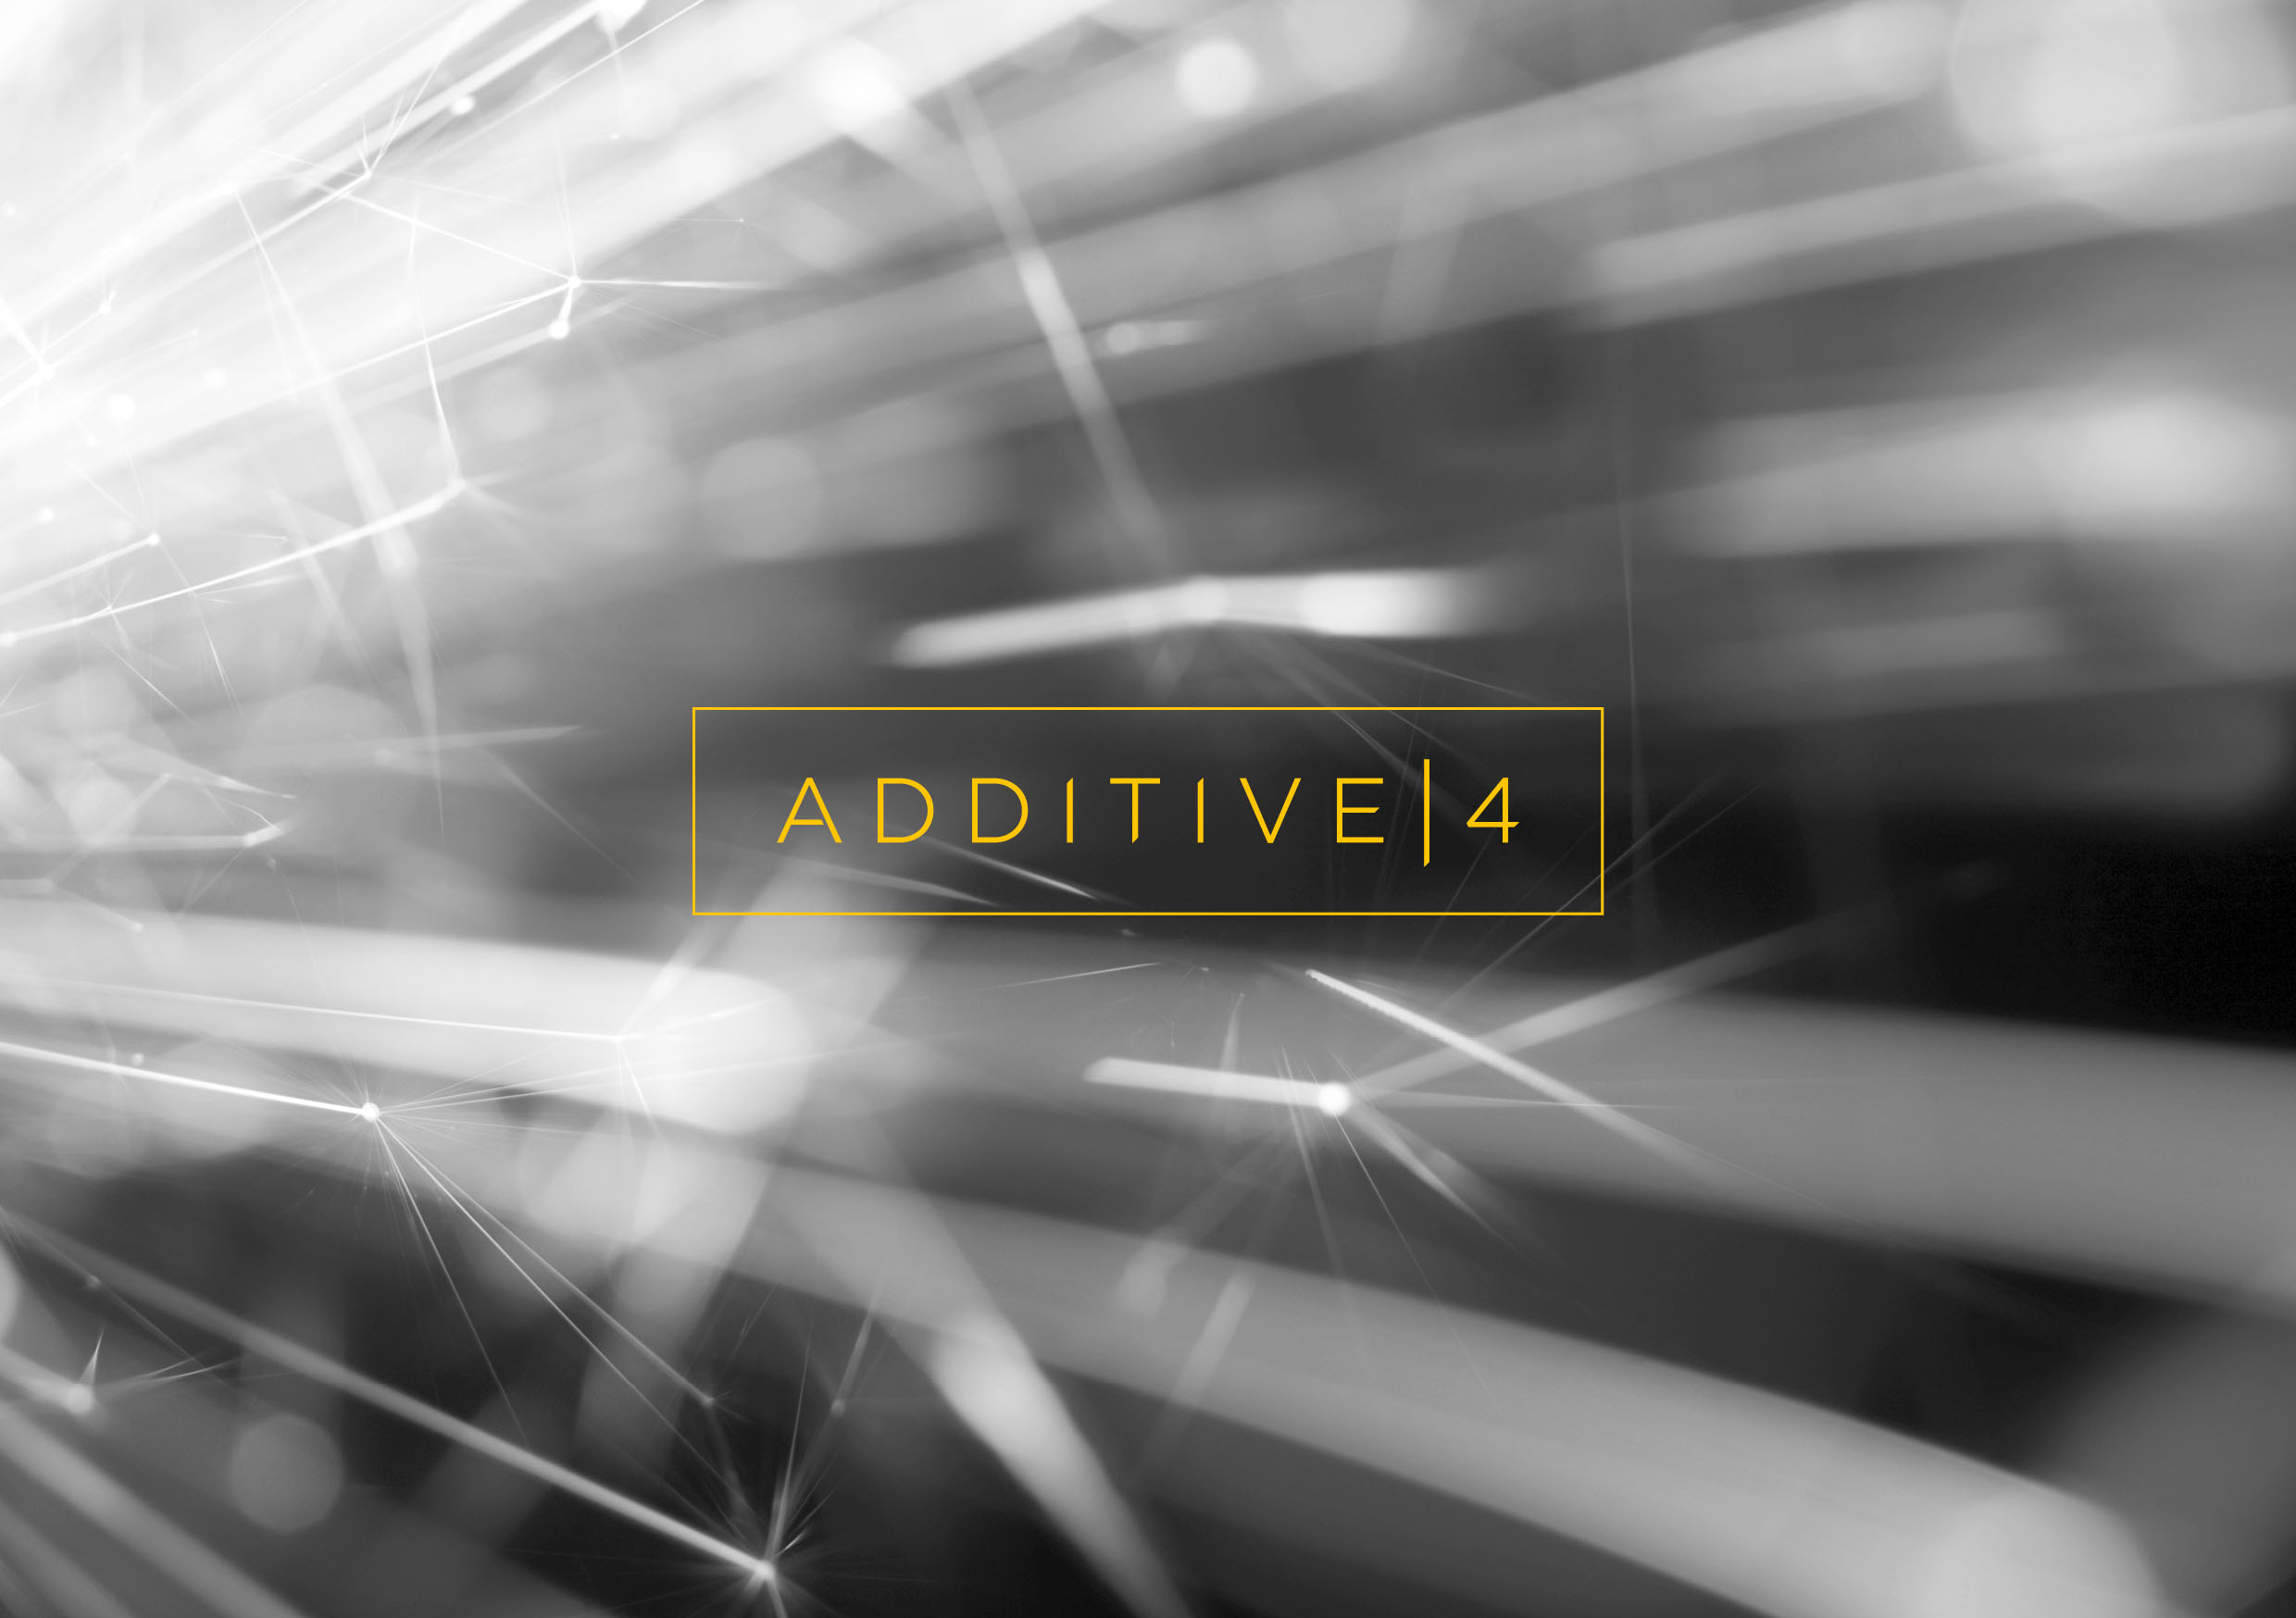 Additive4 | Additive Manufacturing